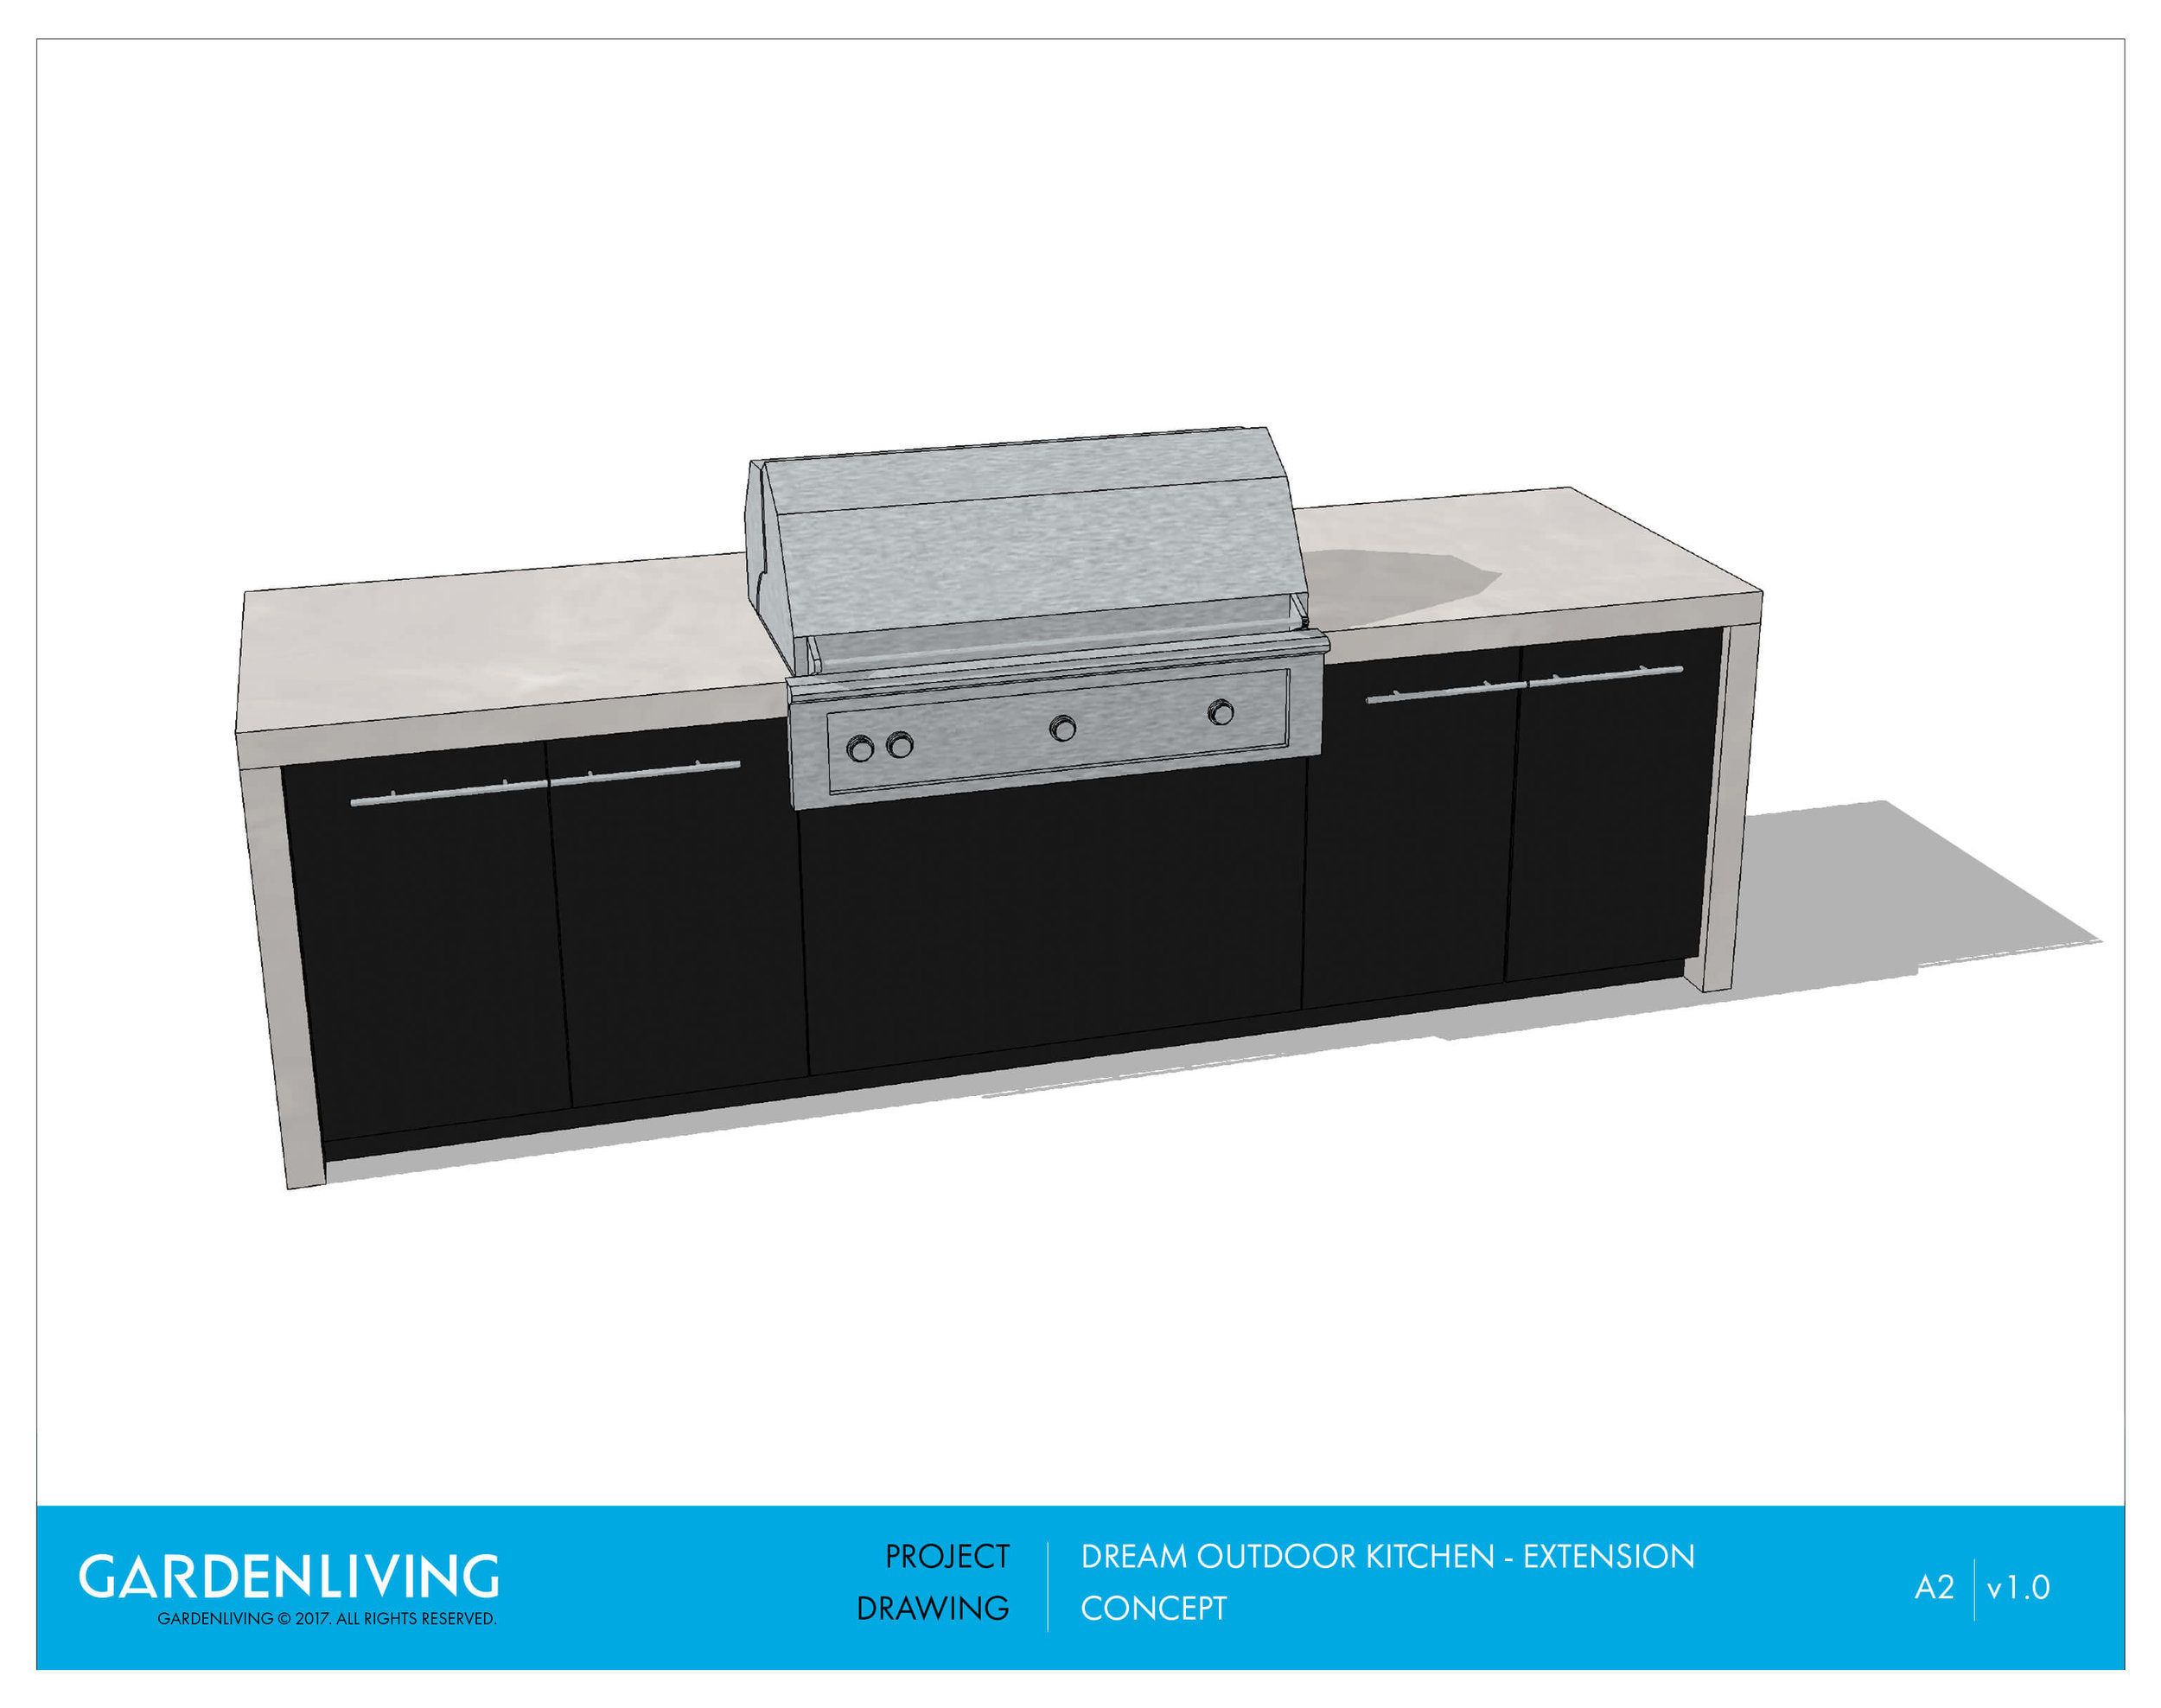 Outdoor Kitchen Poolscape - Concept Drawing 2.jpg